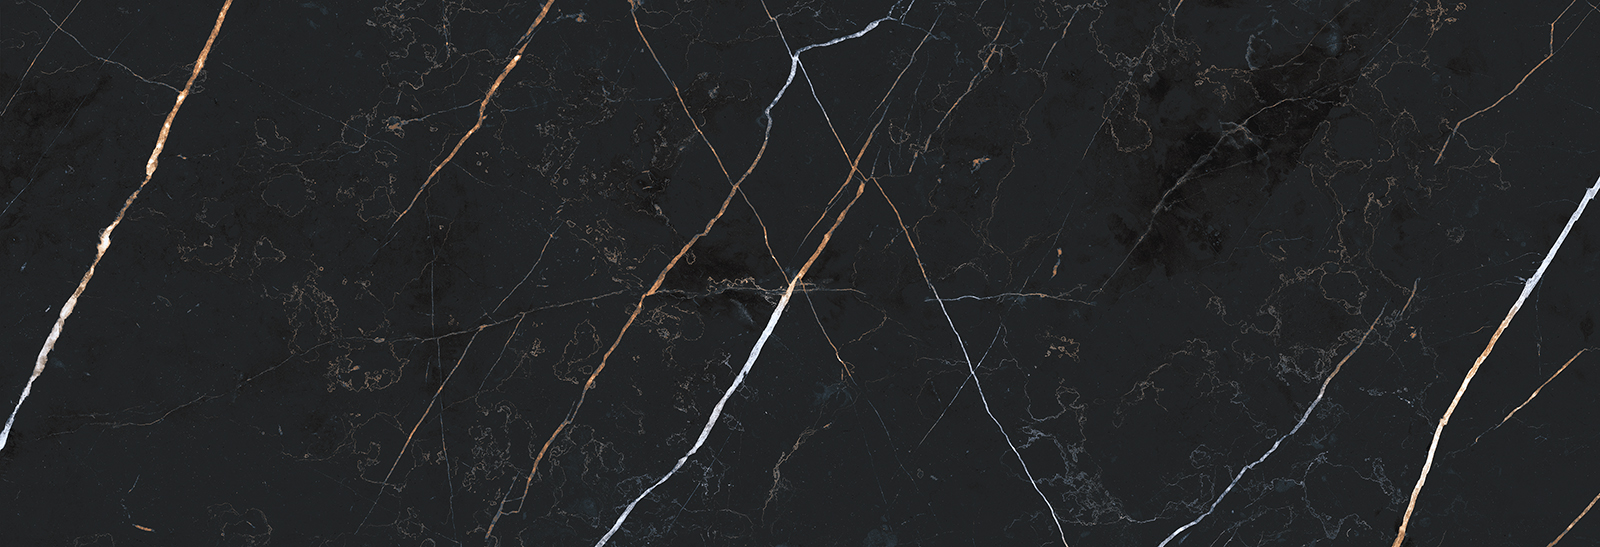 Плитка Intercerama Dark marble стена чёрный 3090 210 082